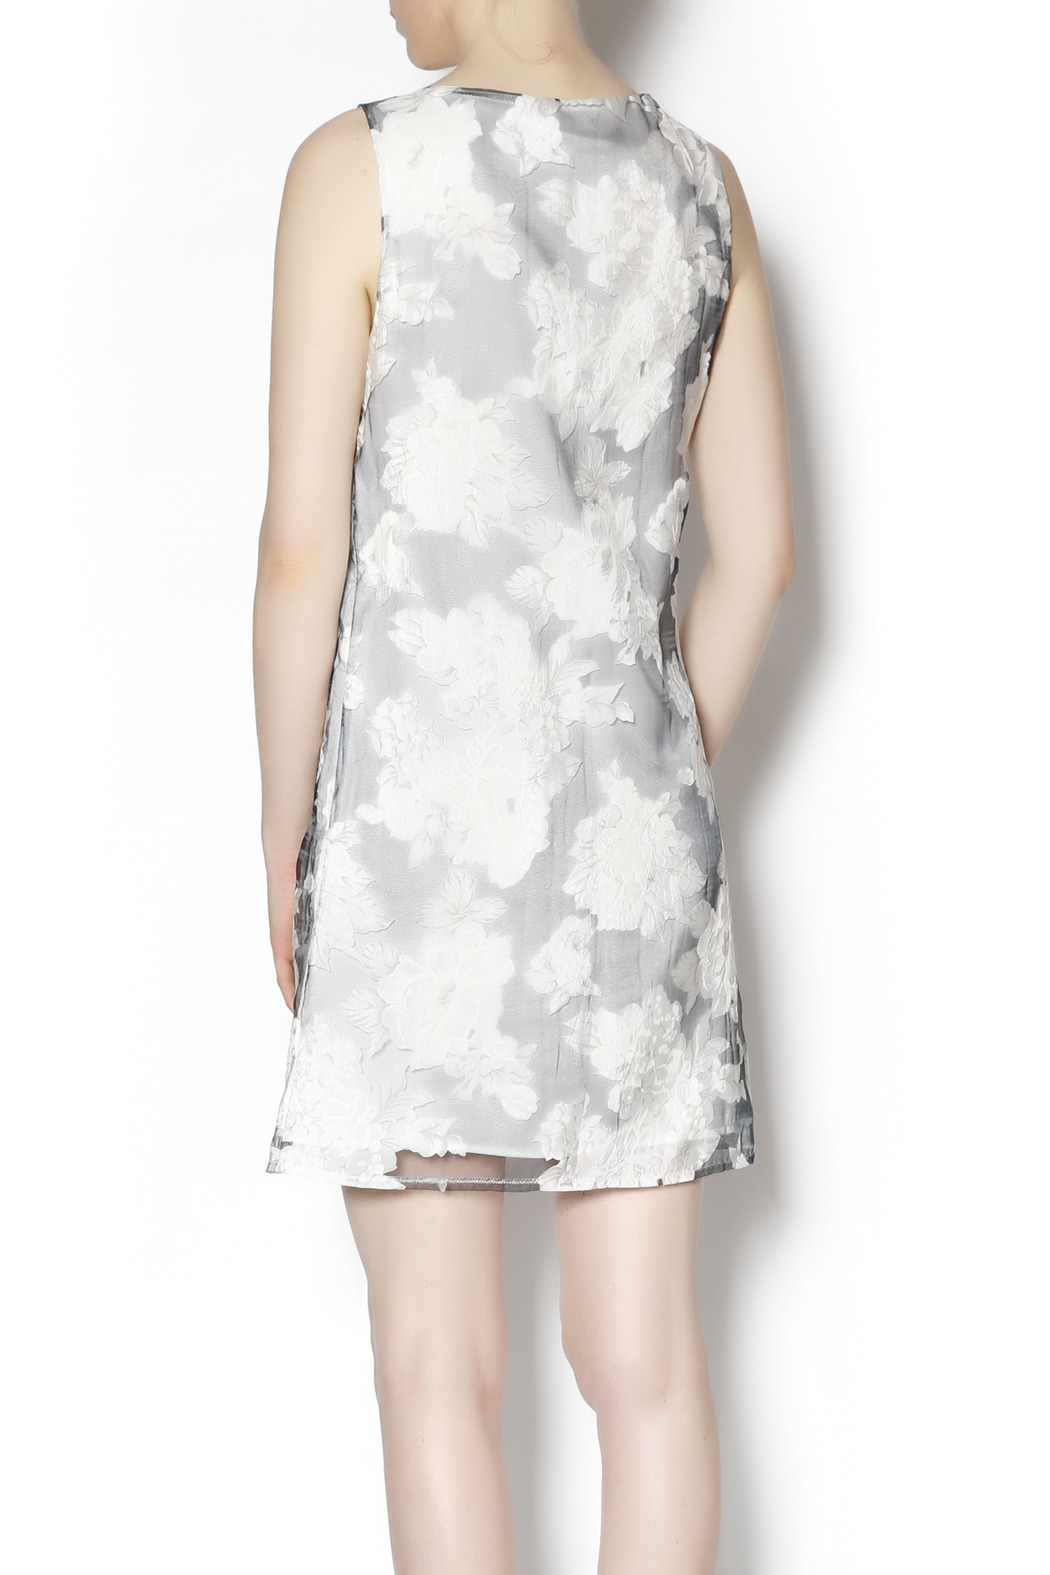 Lucy & Co. sleeveless white dress - Back Cropped Image